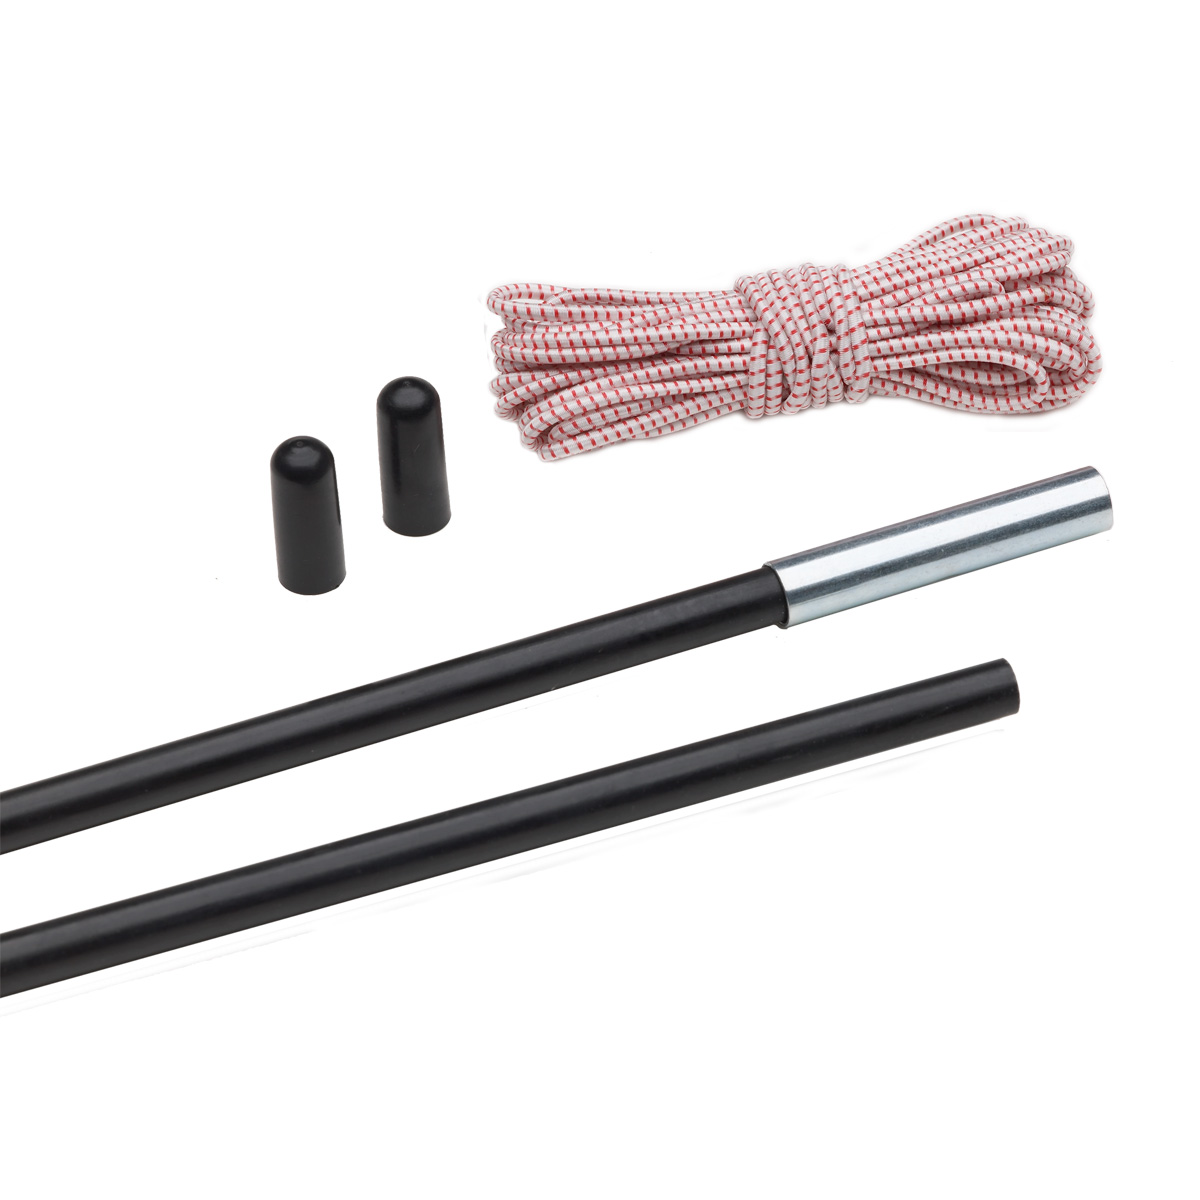 7.9mm Fiberglass Tent Pole Repair/Replacement Kit  sc 1 st  Tents - Johnson Outdoors : dome tent replacement poles - memphite.com